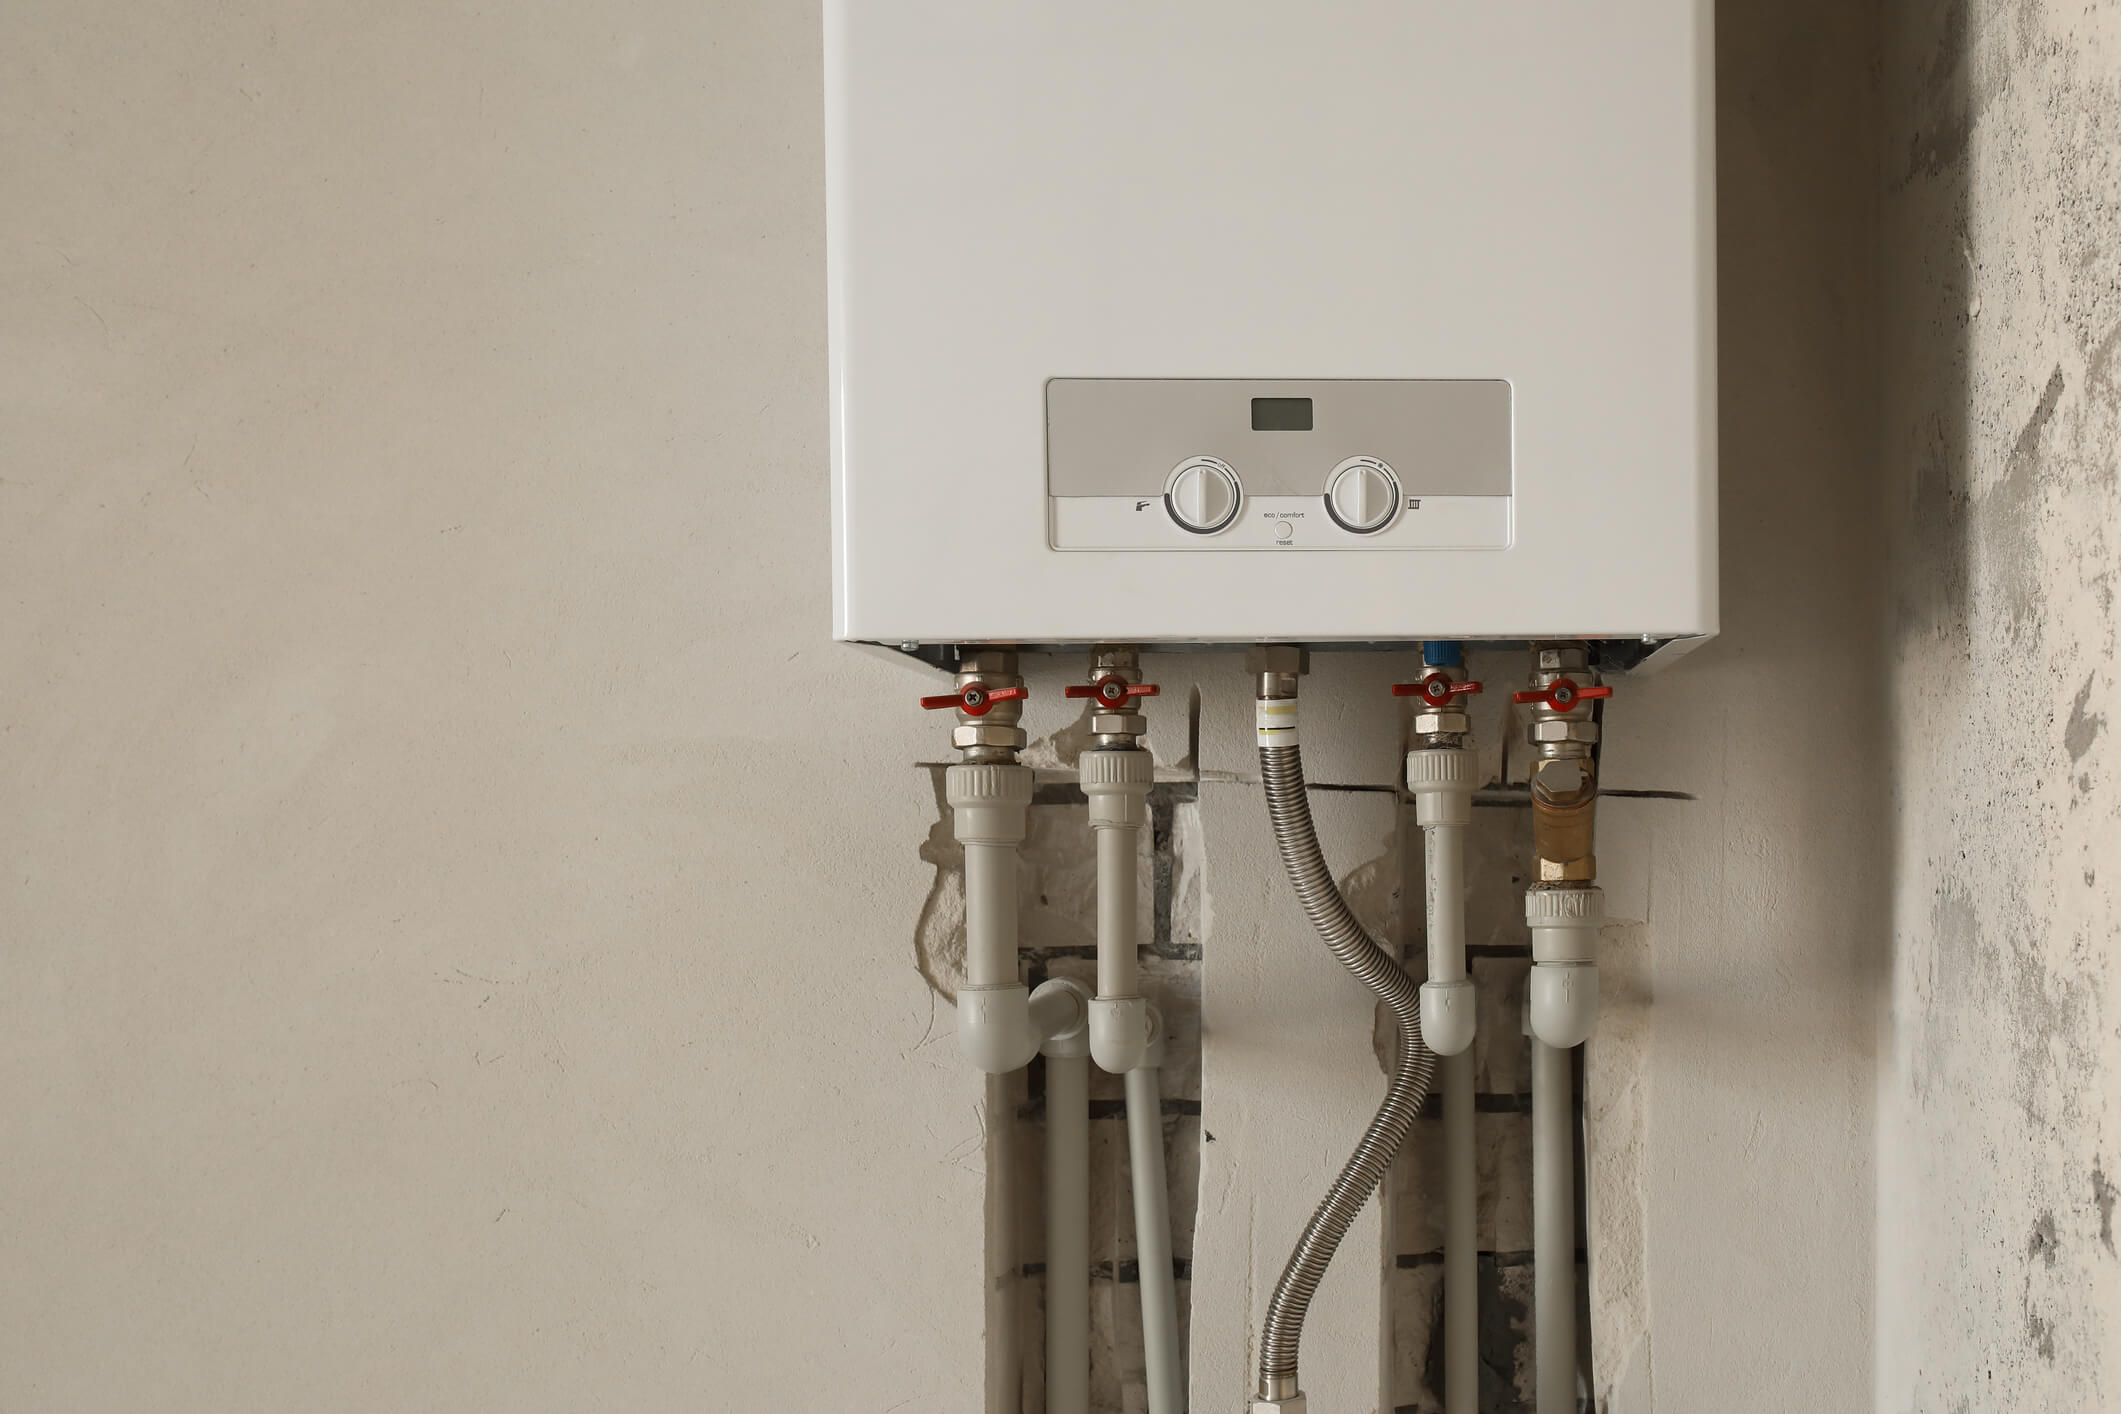 Installation of home gas heating boiler with red taps.